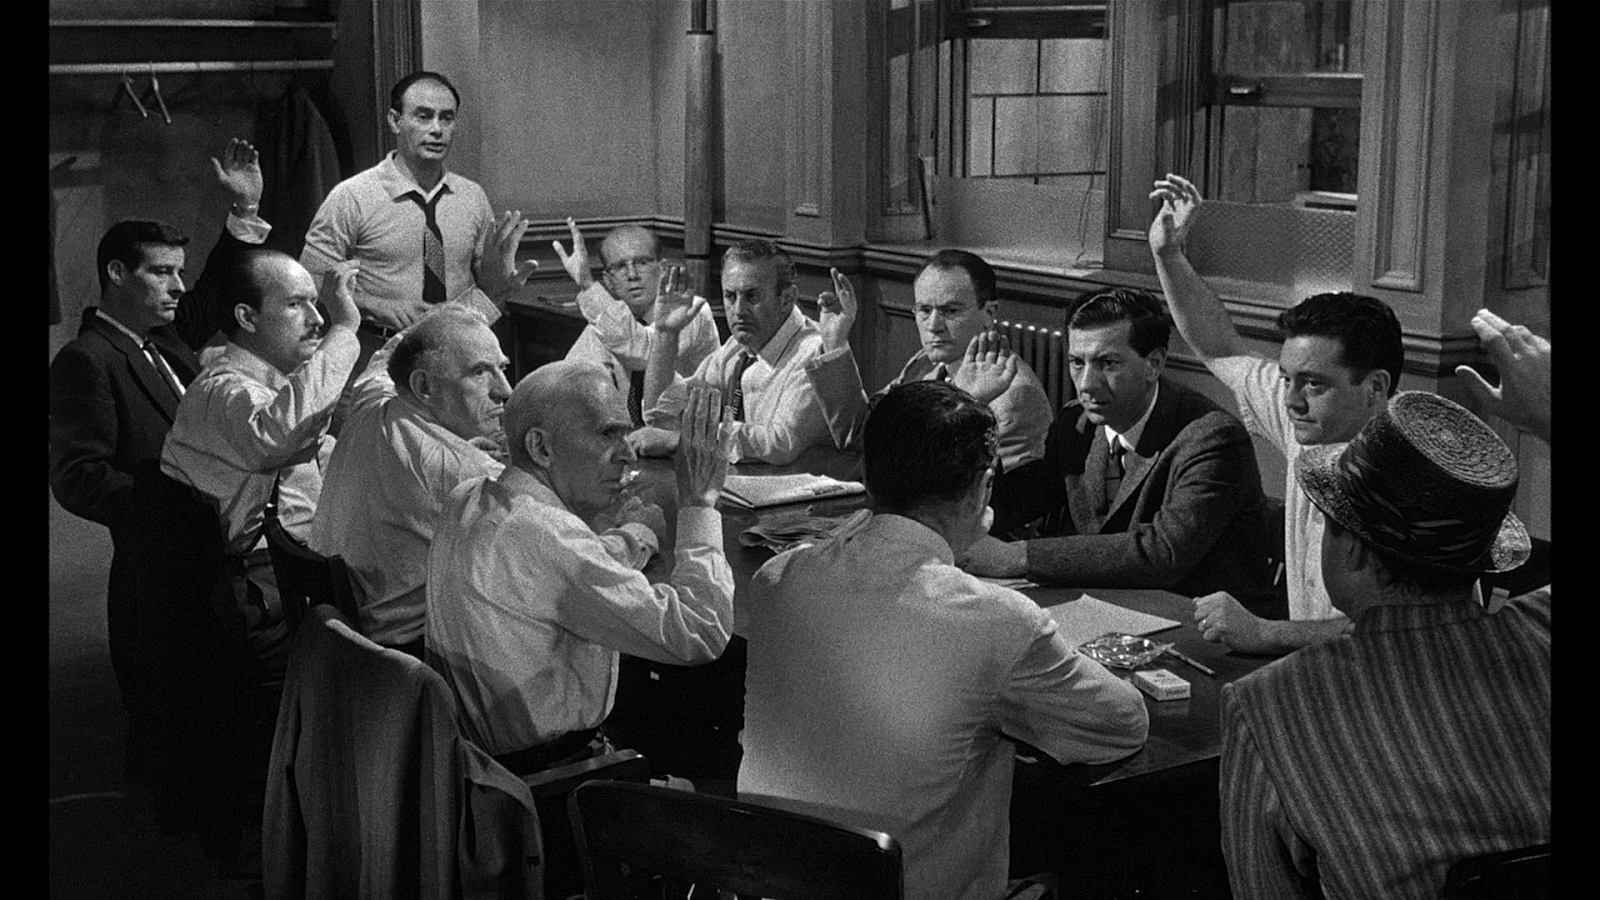 tweleve angry men 12 angry men study guide contains a biography of reginald rose, literature essays, quiz questions, major themes, characters, and a full summary and analysis.